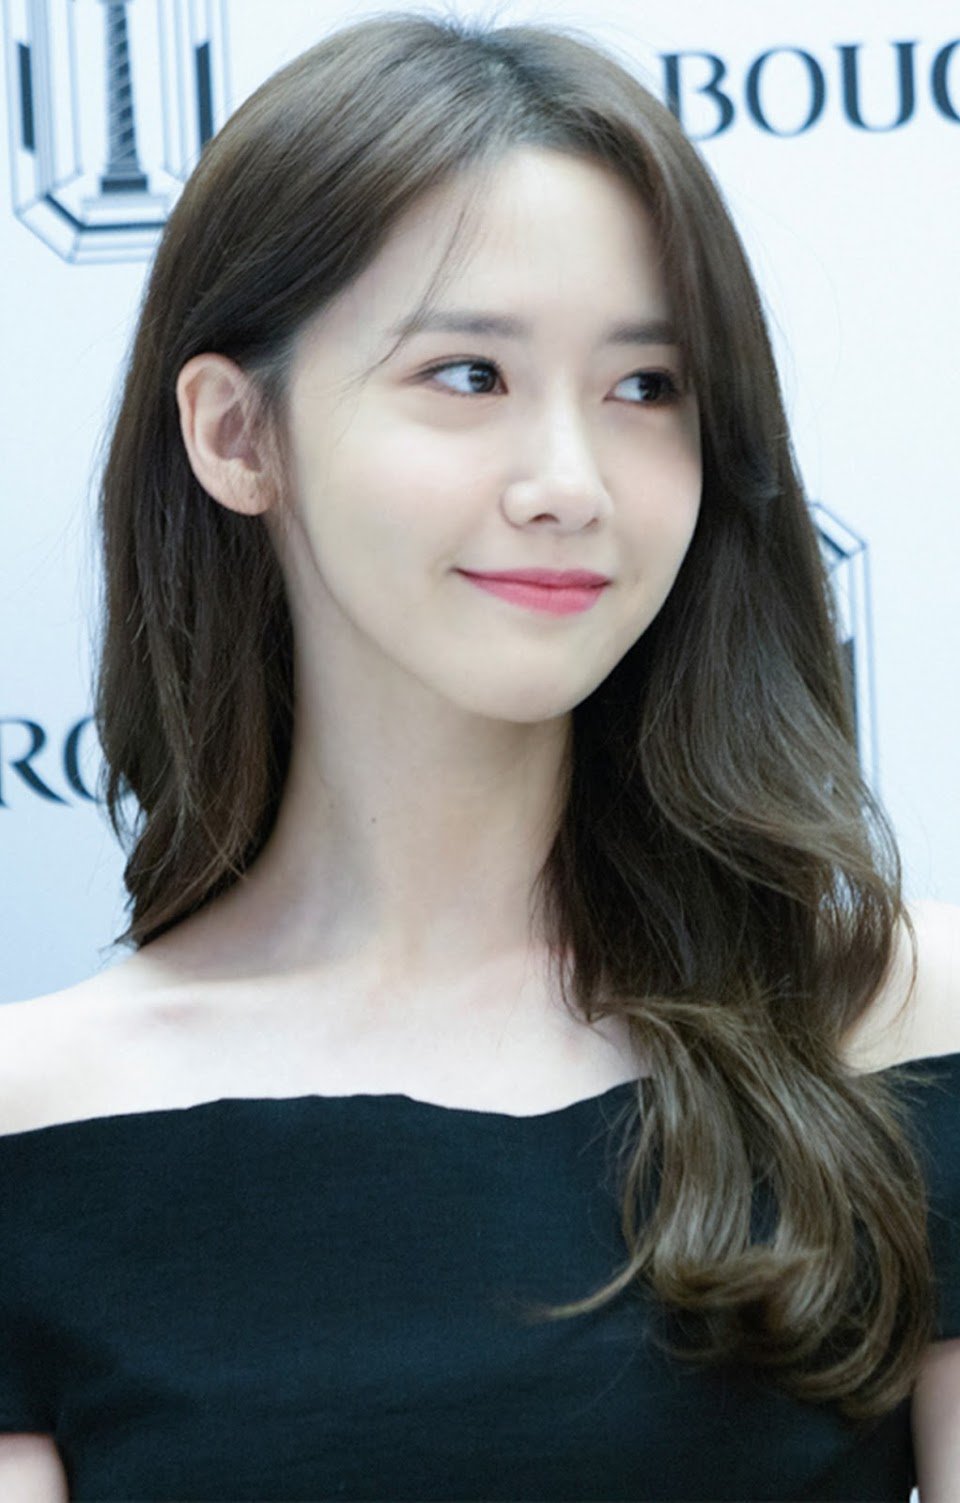 Im_Yoon-ah_at_a_Bucheron_event_in_November_2016_(cropped)